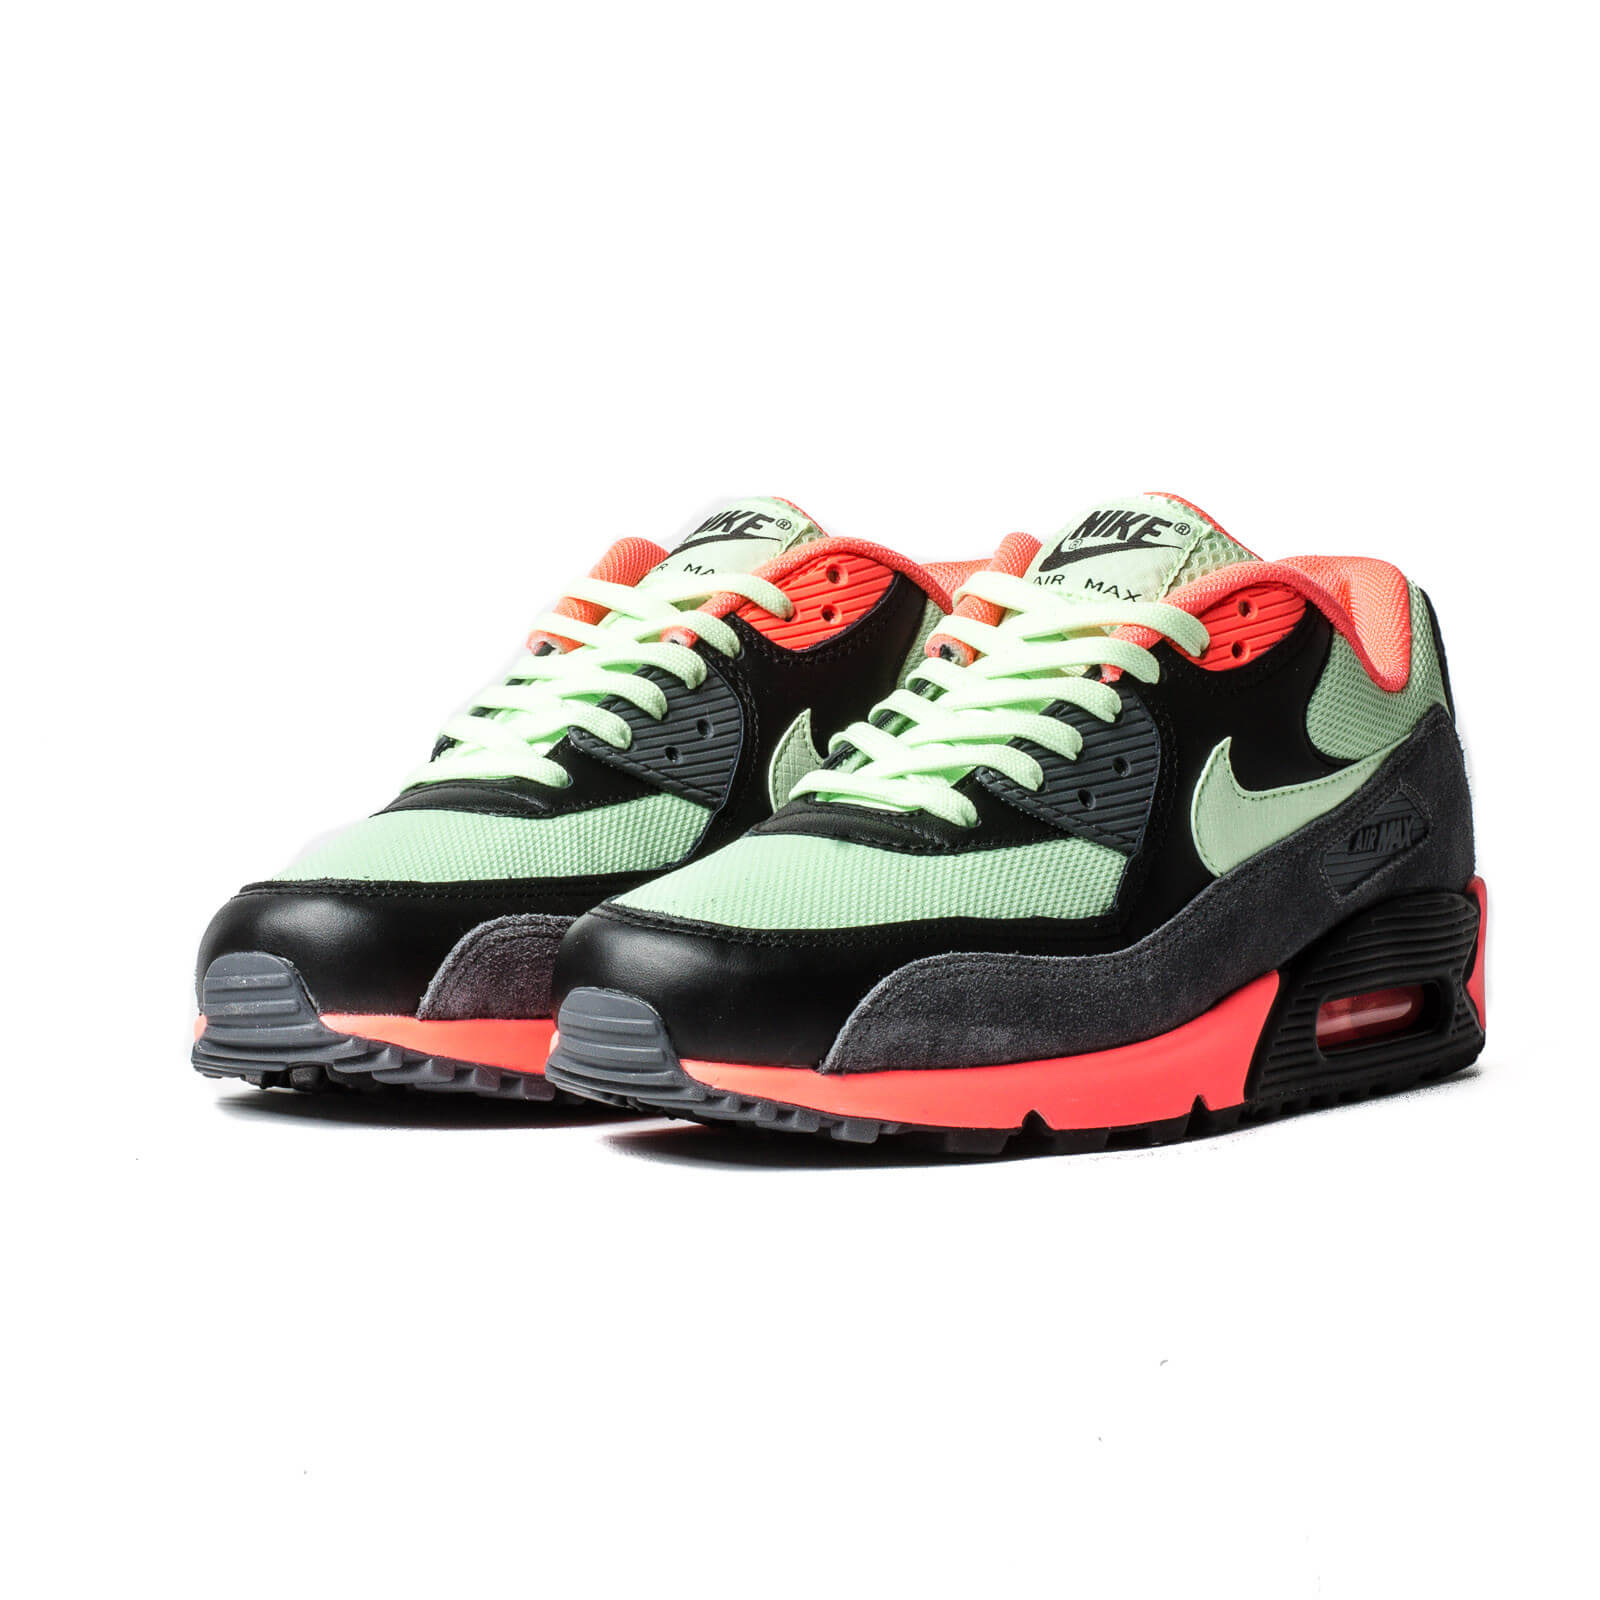 Nike Air Max 90 Essential Vapor Green Where To Buy